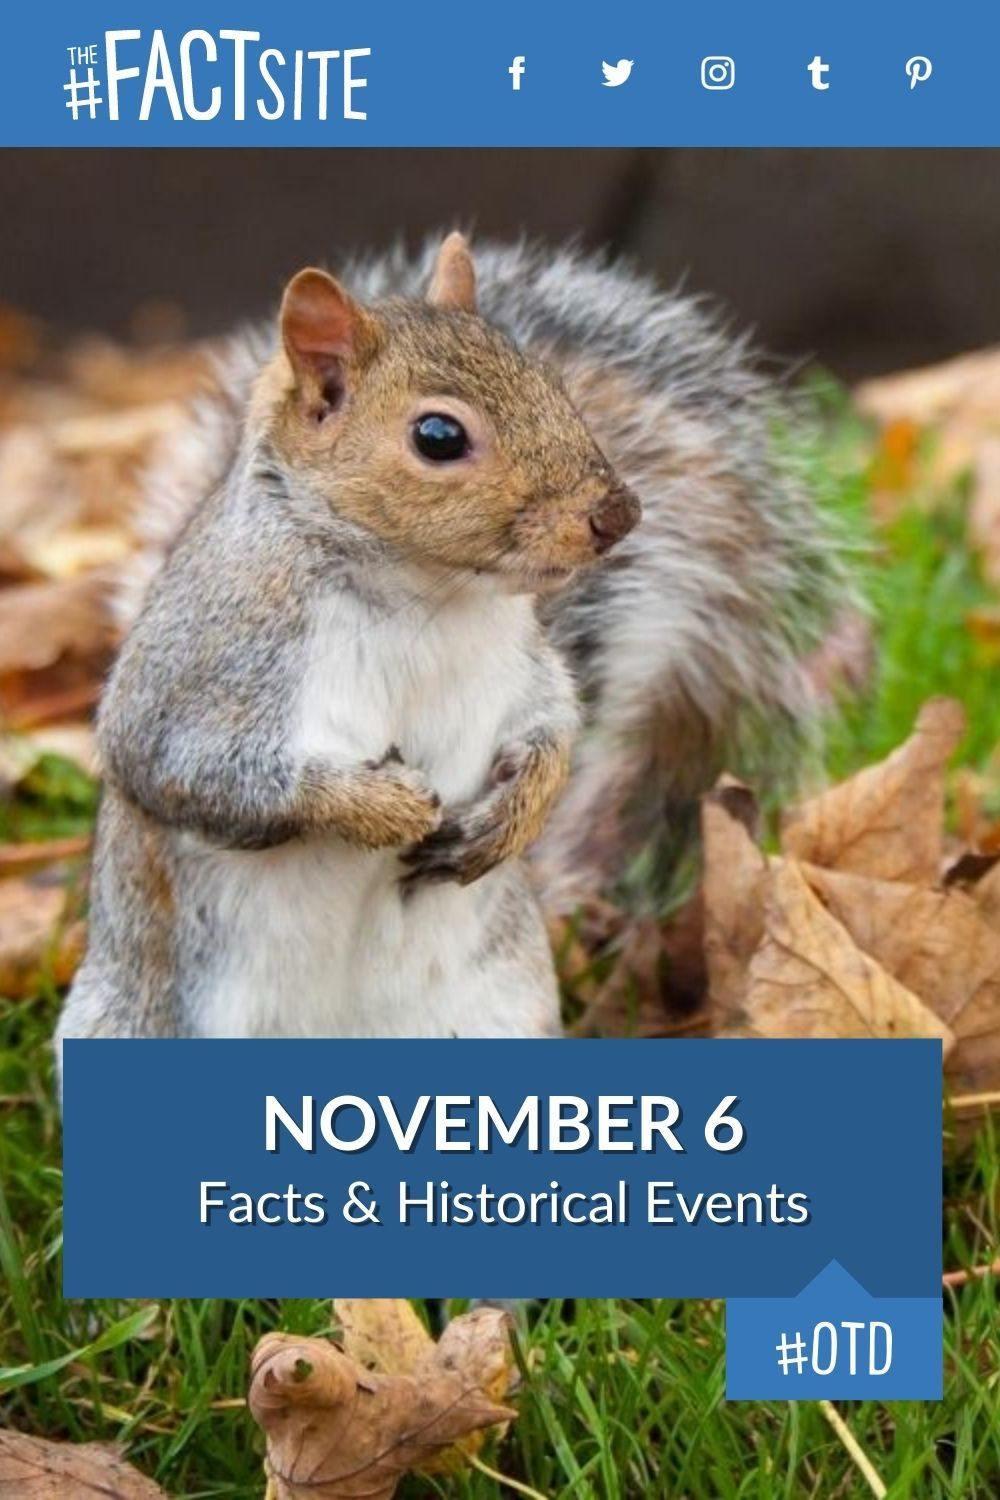 Facts & Historic Events That Happened on November 6